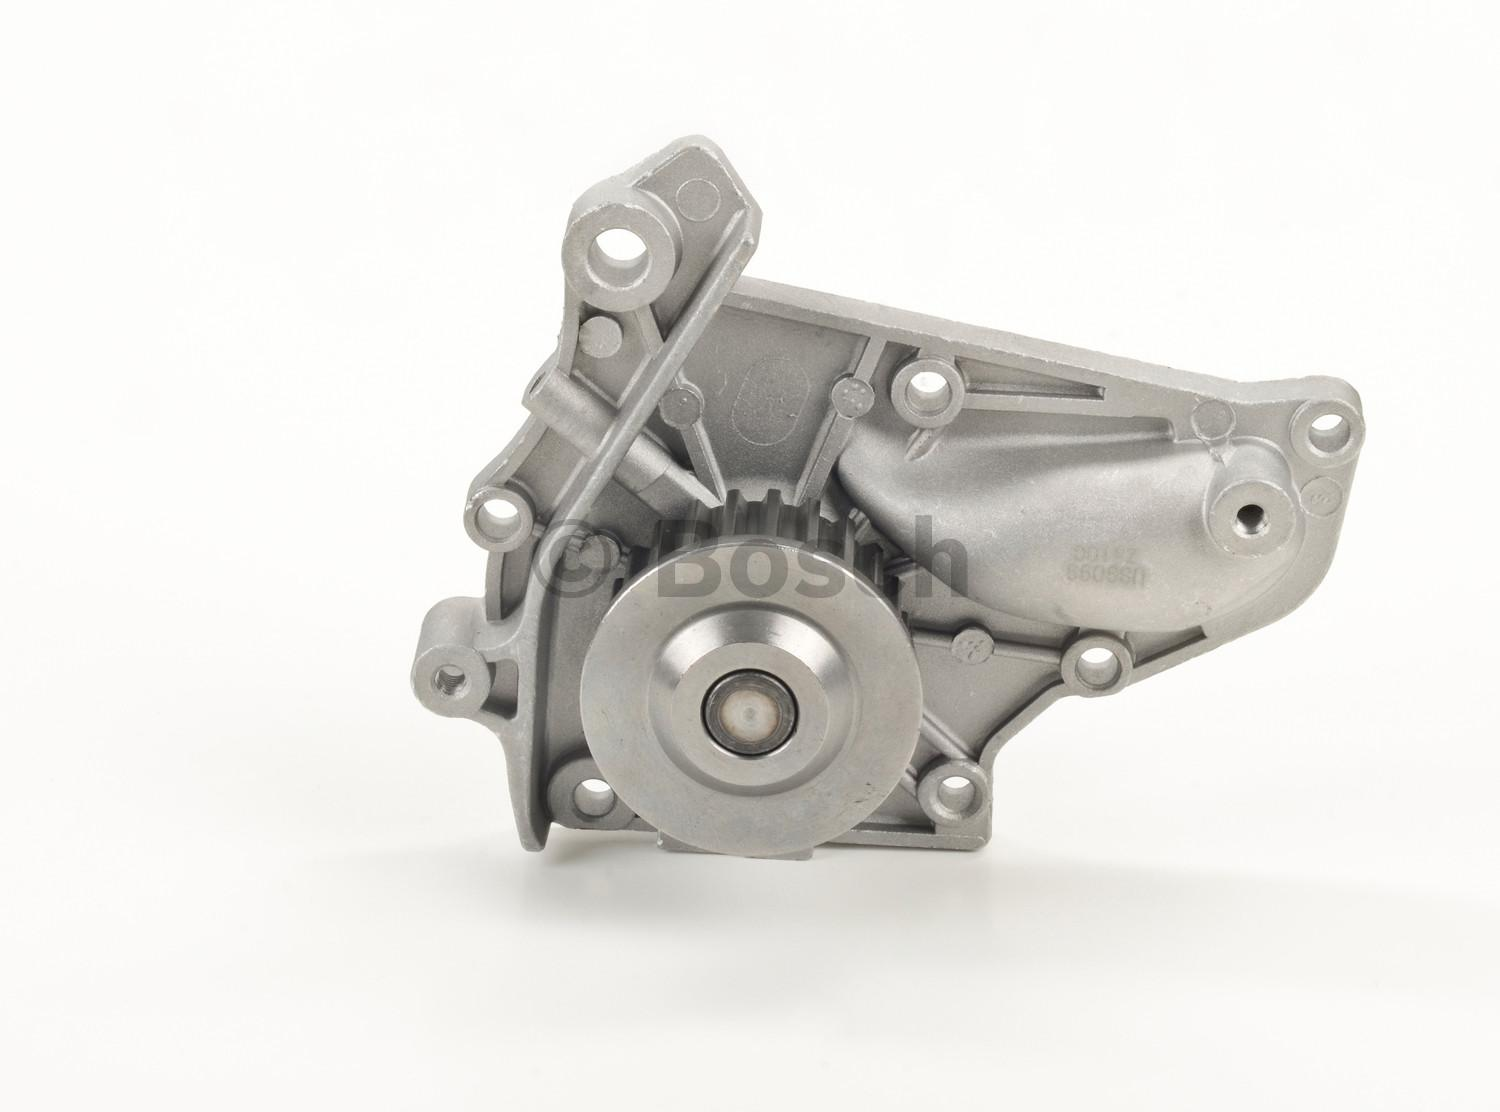 Engine water pump fits 1987 2001 toyota camry celica mr2 for 2001 camry window motor